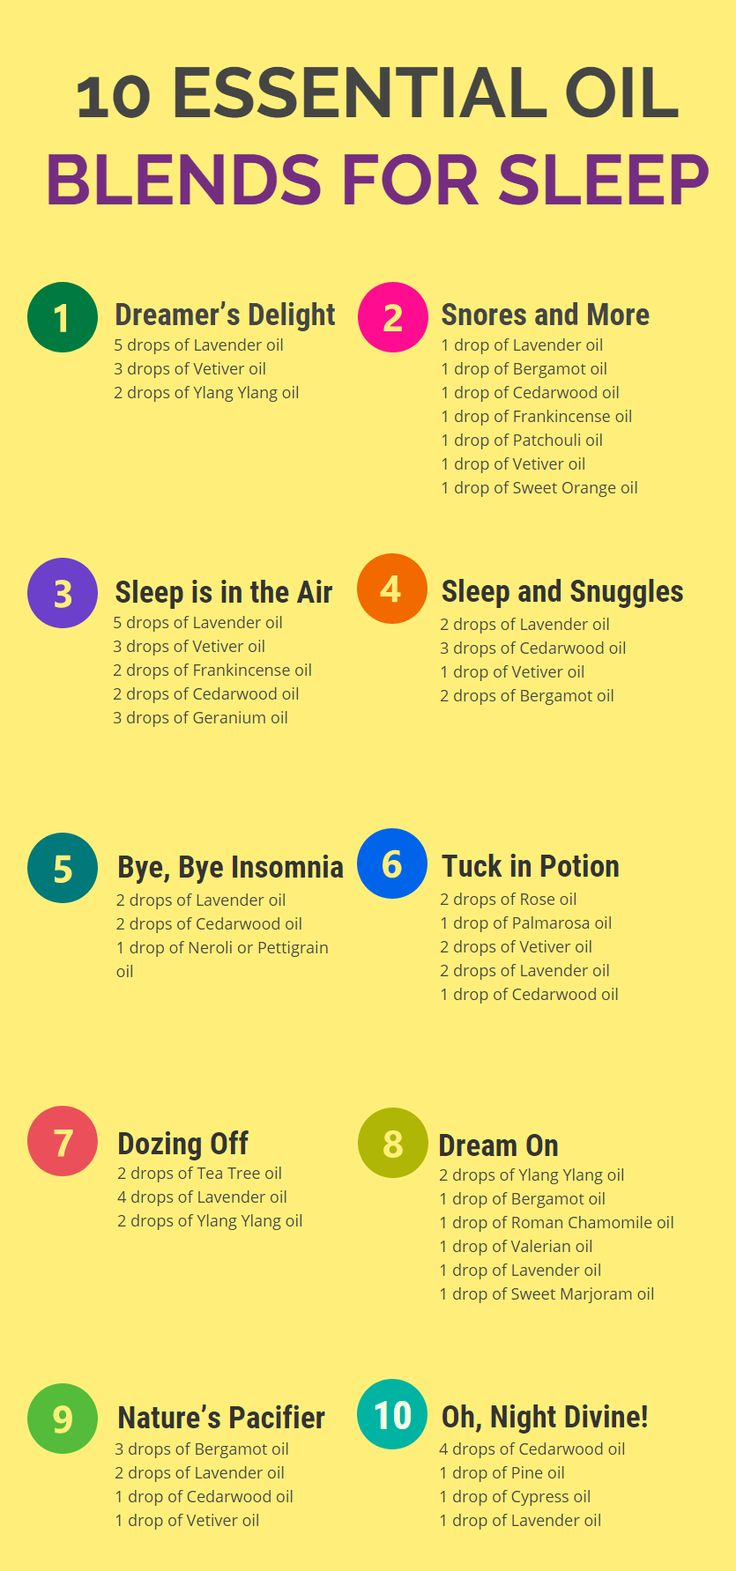 10 Essential Oil Blends for Sleep and Relaxation